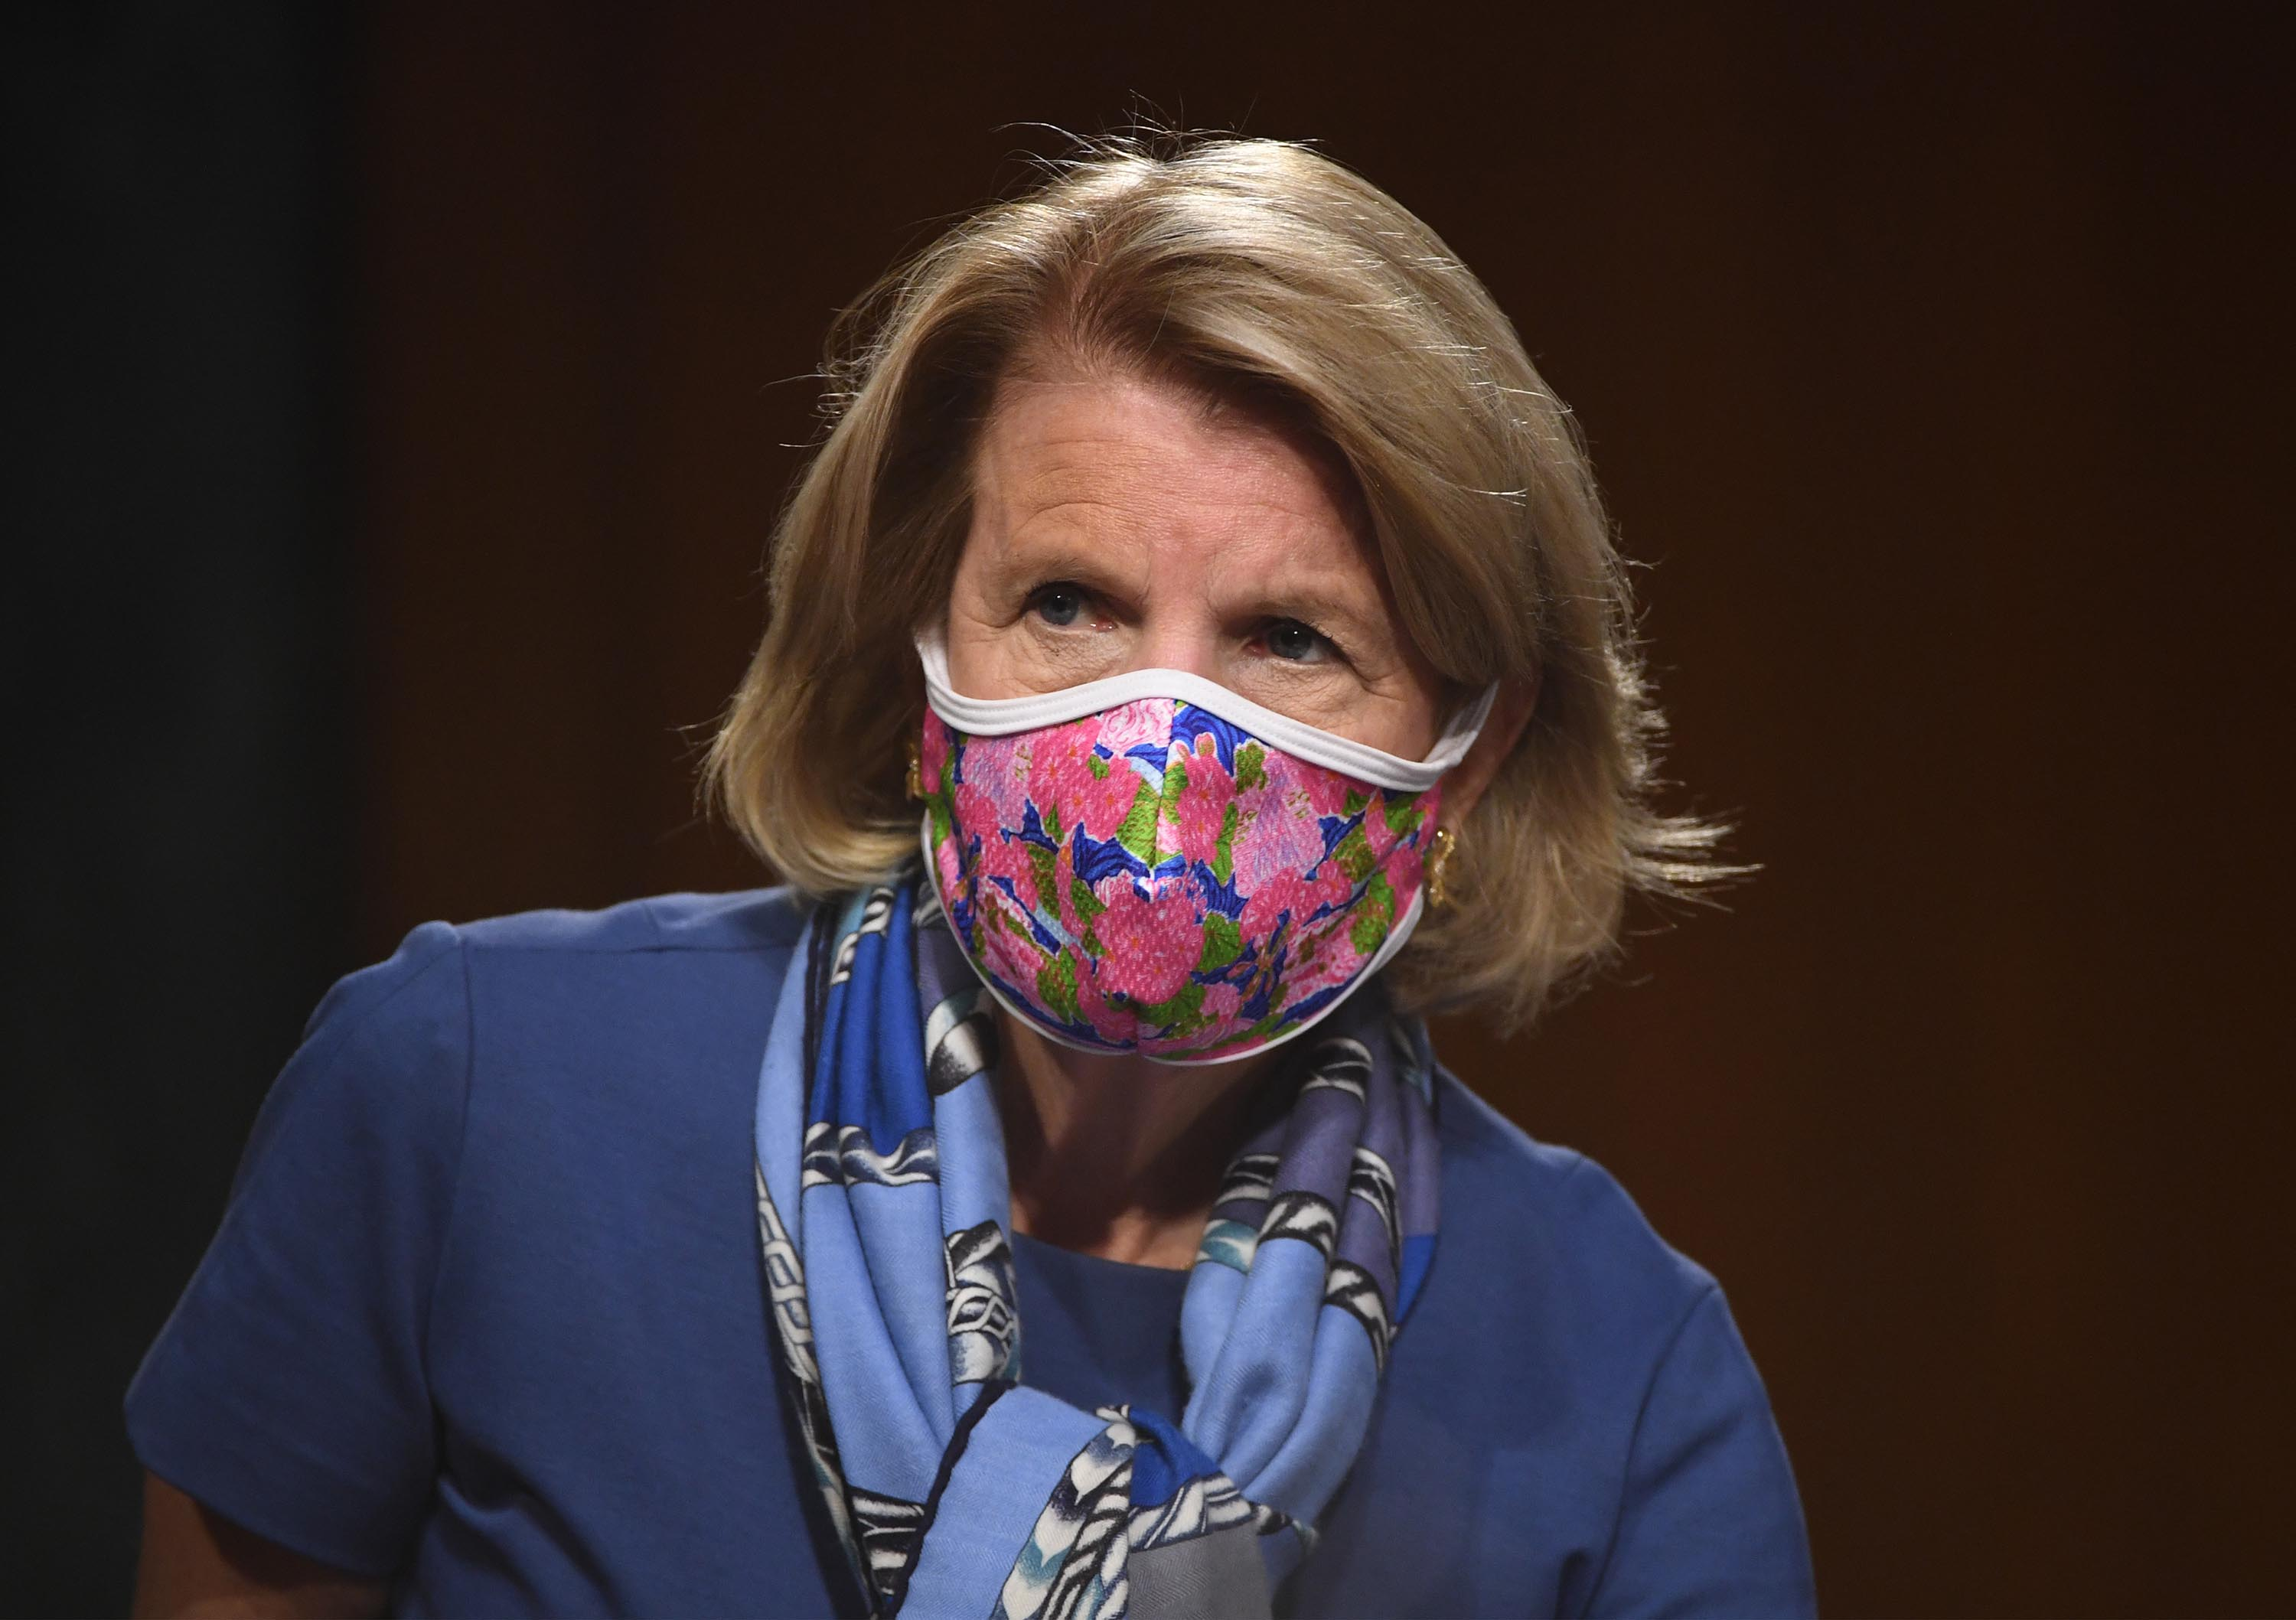 Sen. Shelley Moore Capito (R-WV) attends a hearing in the Dirksen Senate Office Building in May 2020 in Washington, DC.